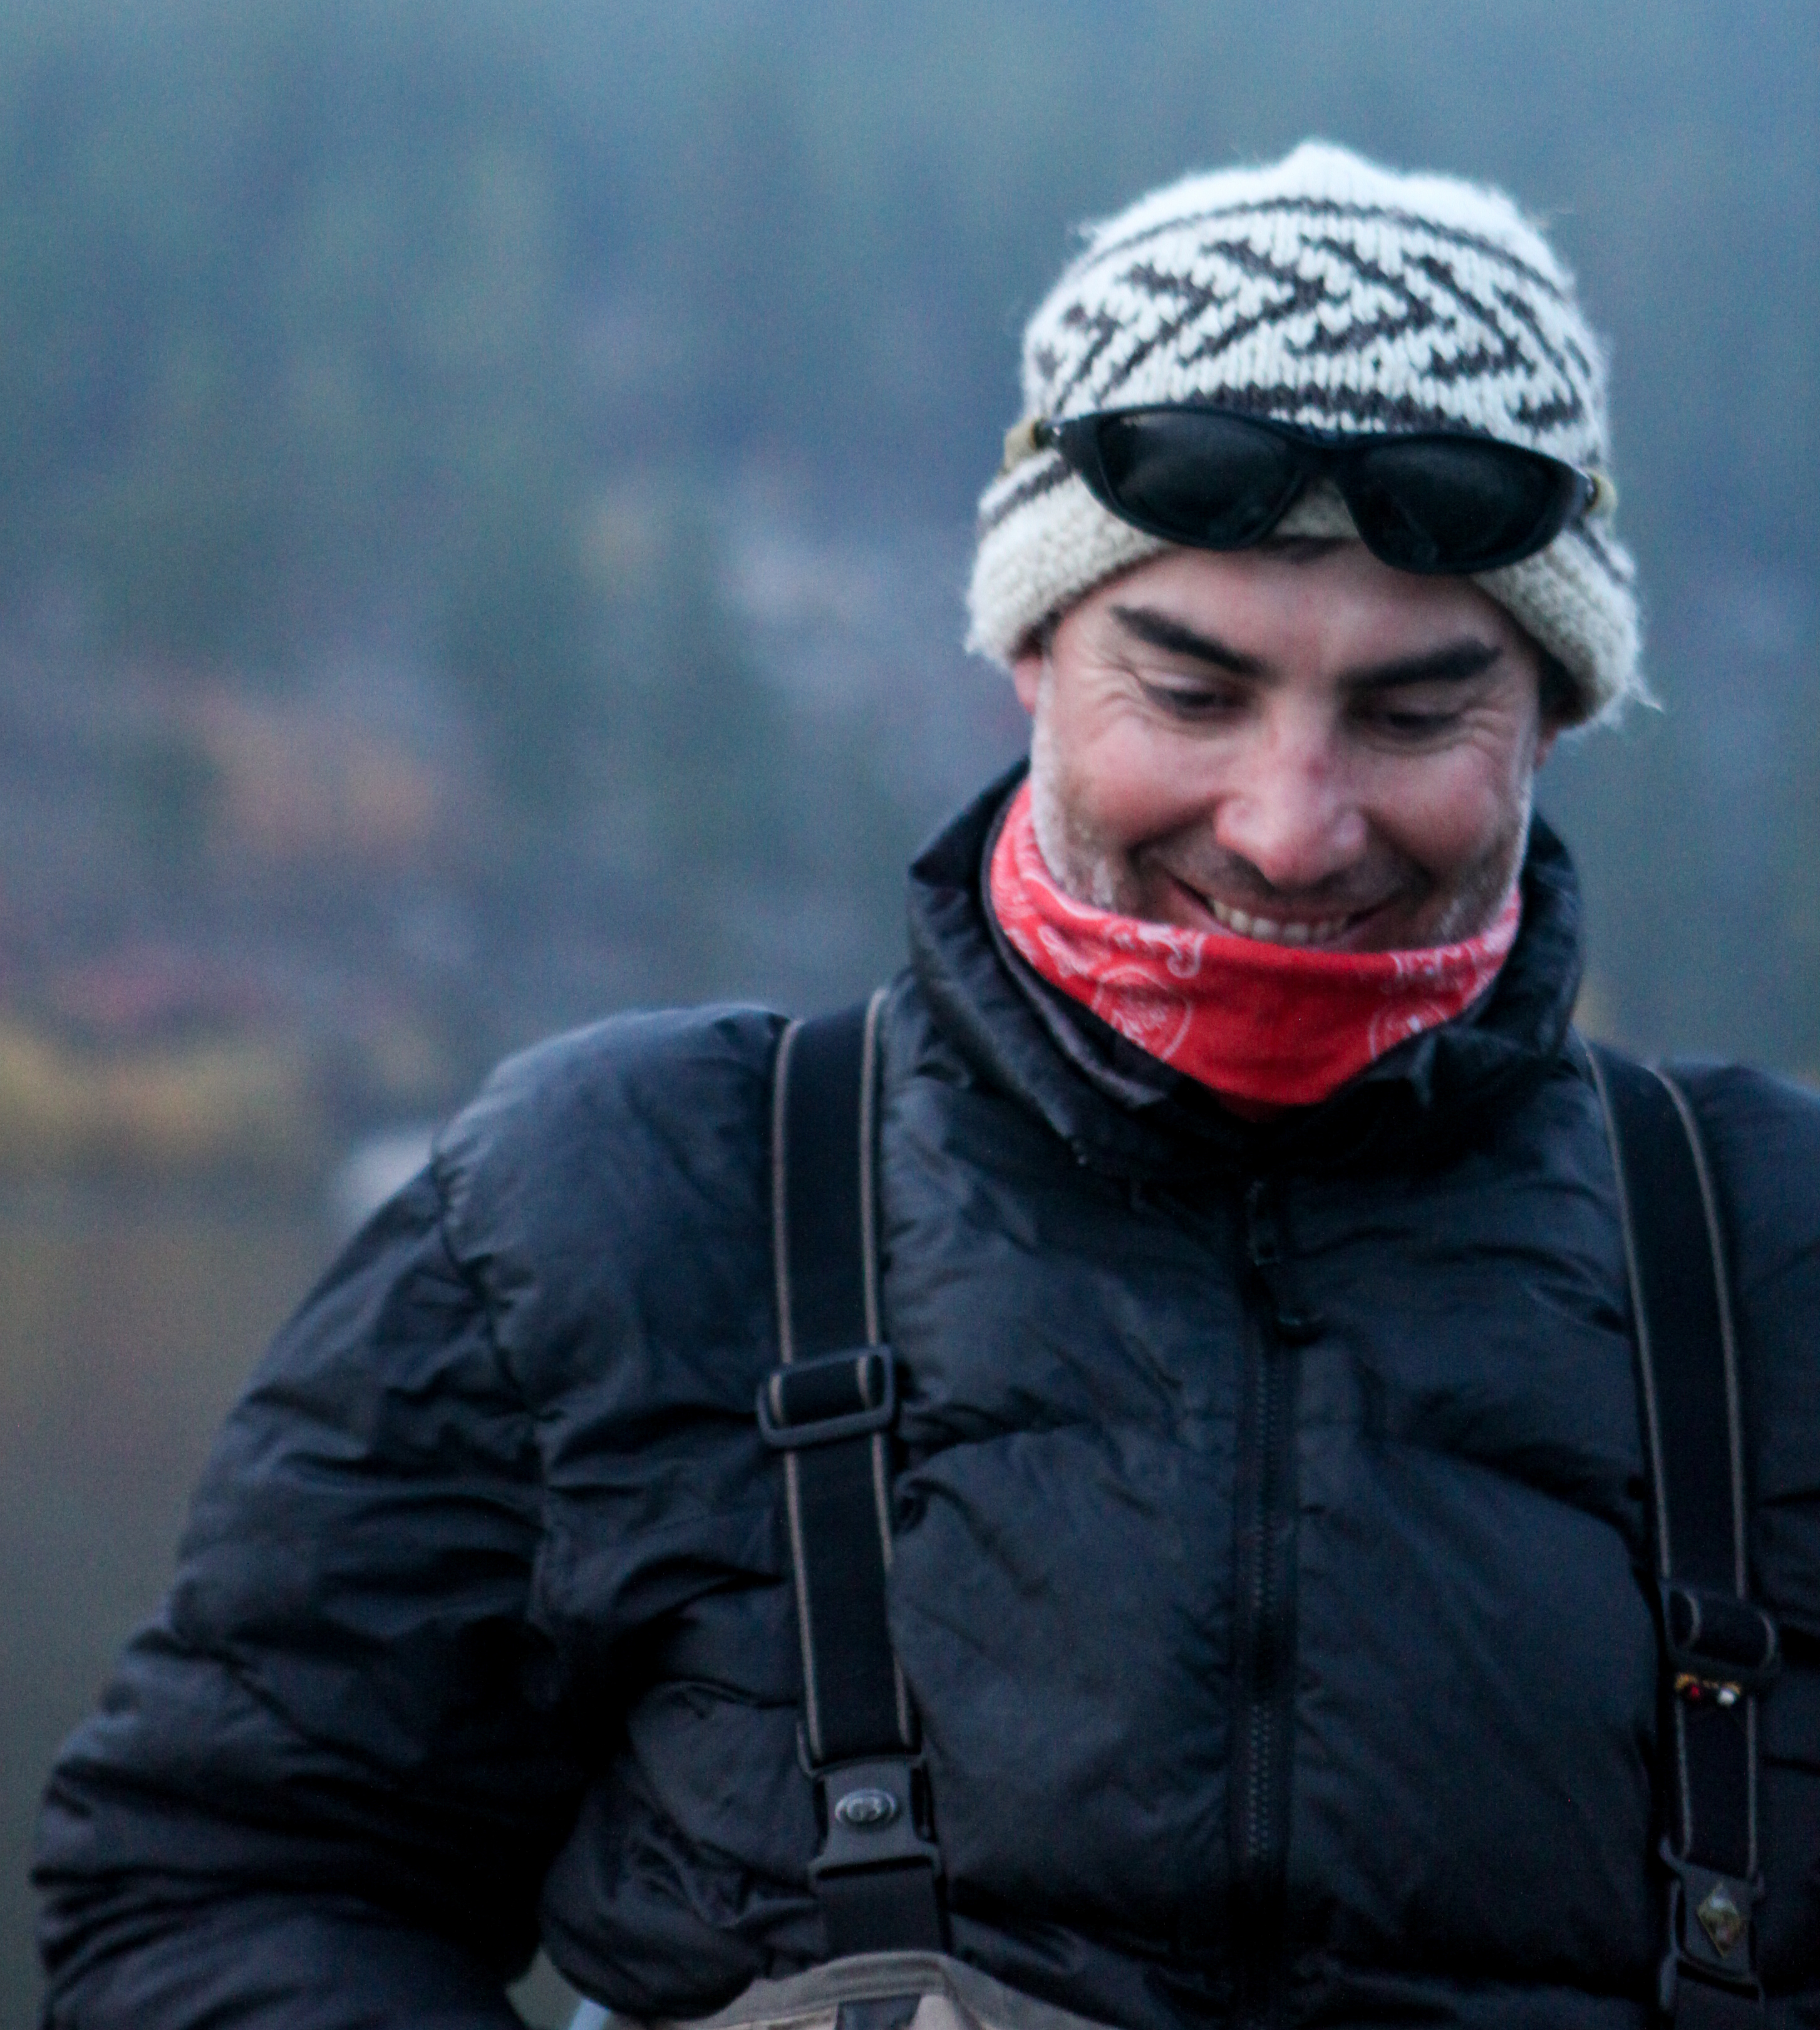 Daniel is an artist... creating music with a fly-rod or classical guitar. Daniel has guided for over twenty-years, with over fifteen seasons on Mongolia's rivers.  Whitewater kayaker and backcountry expert, he's climbed some of South America's most remote peaks.